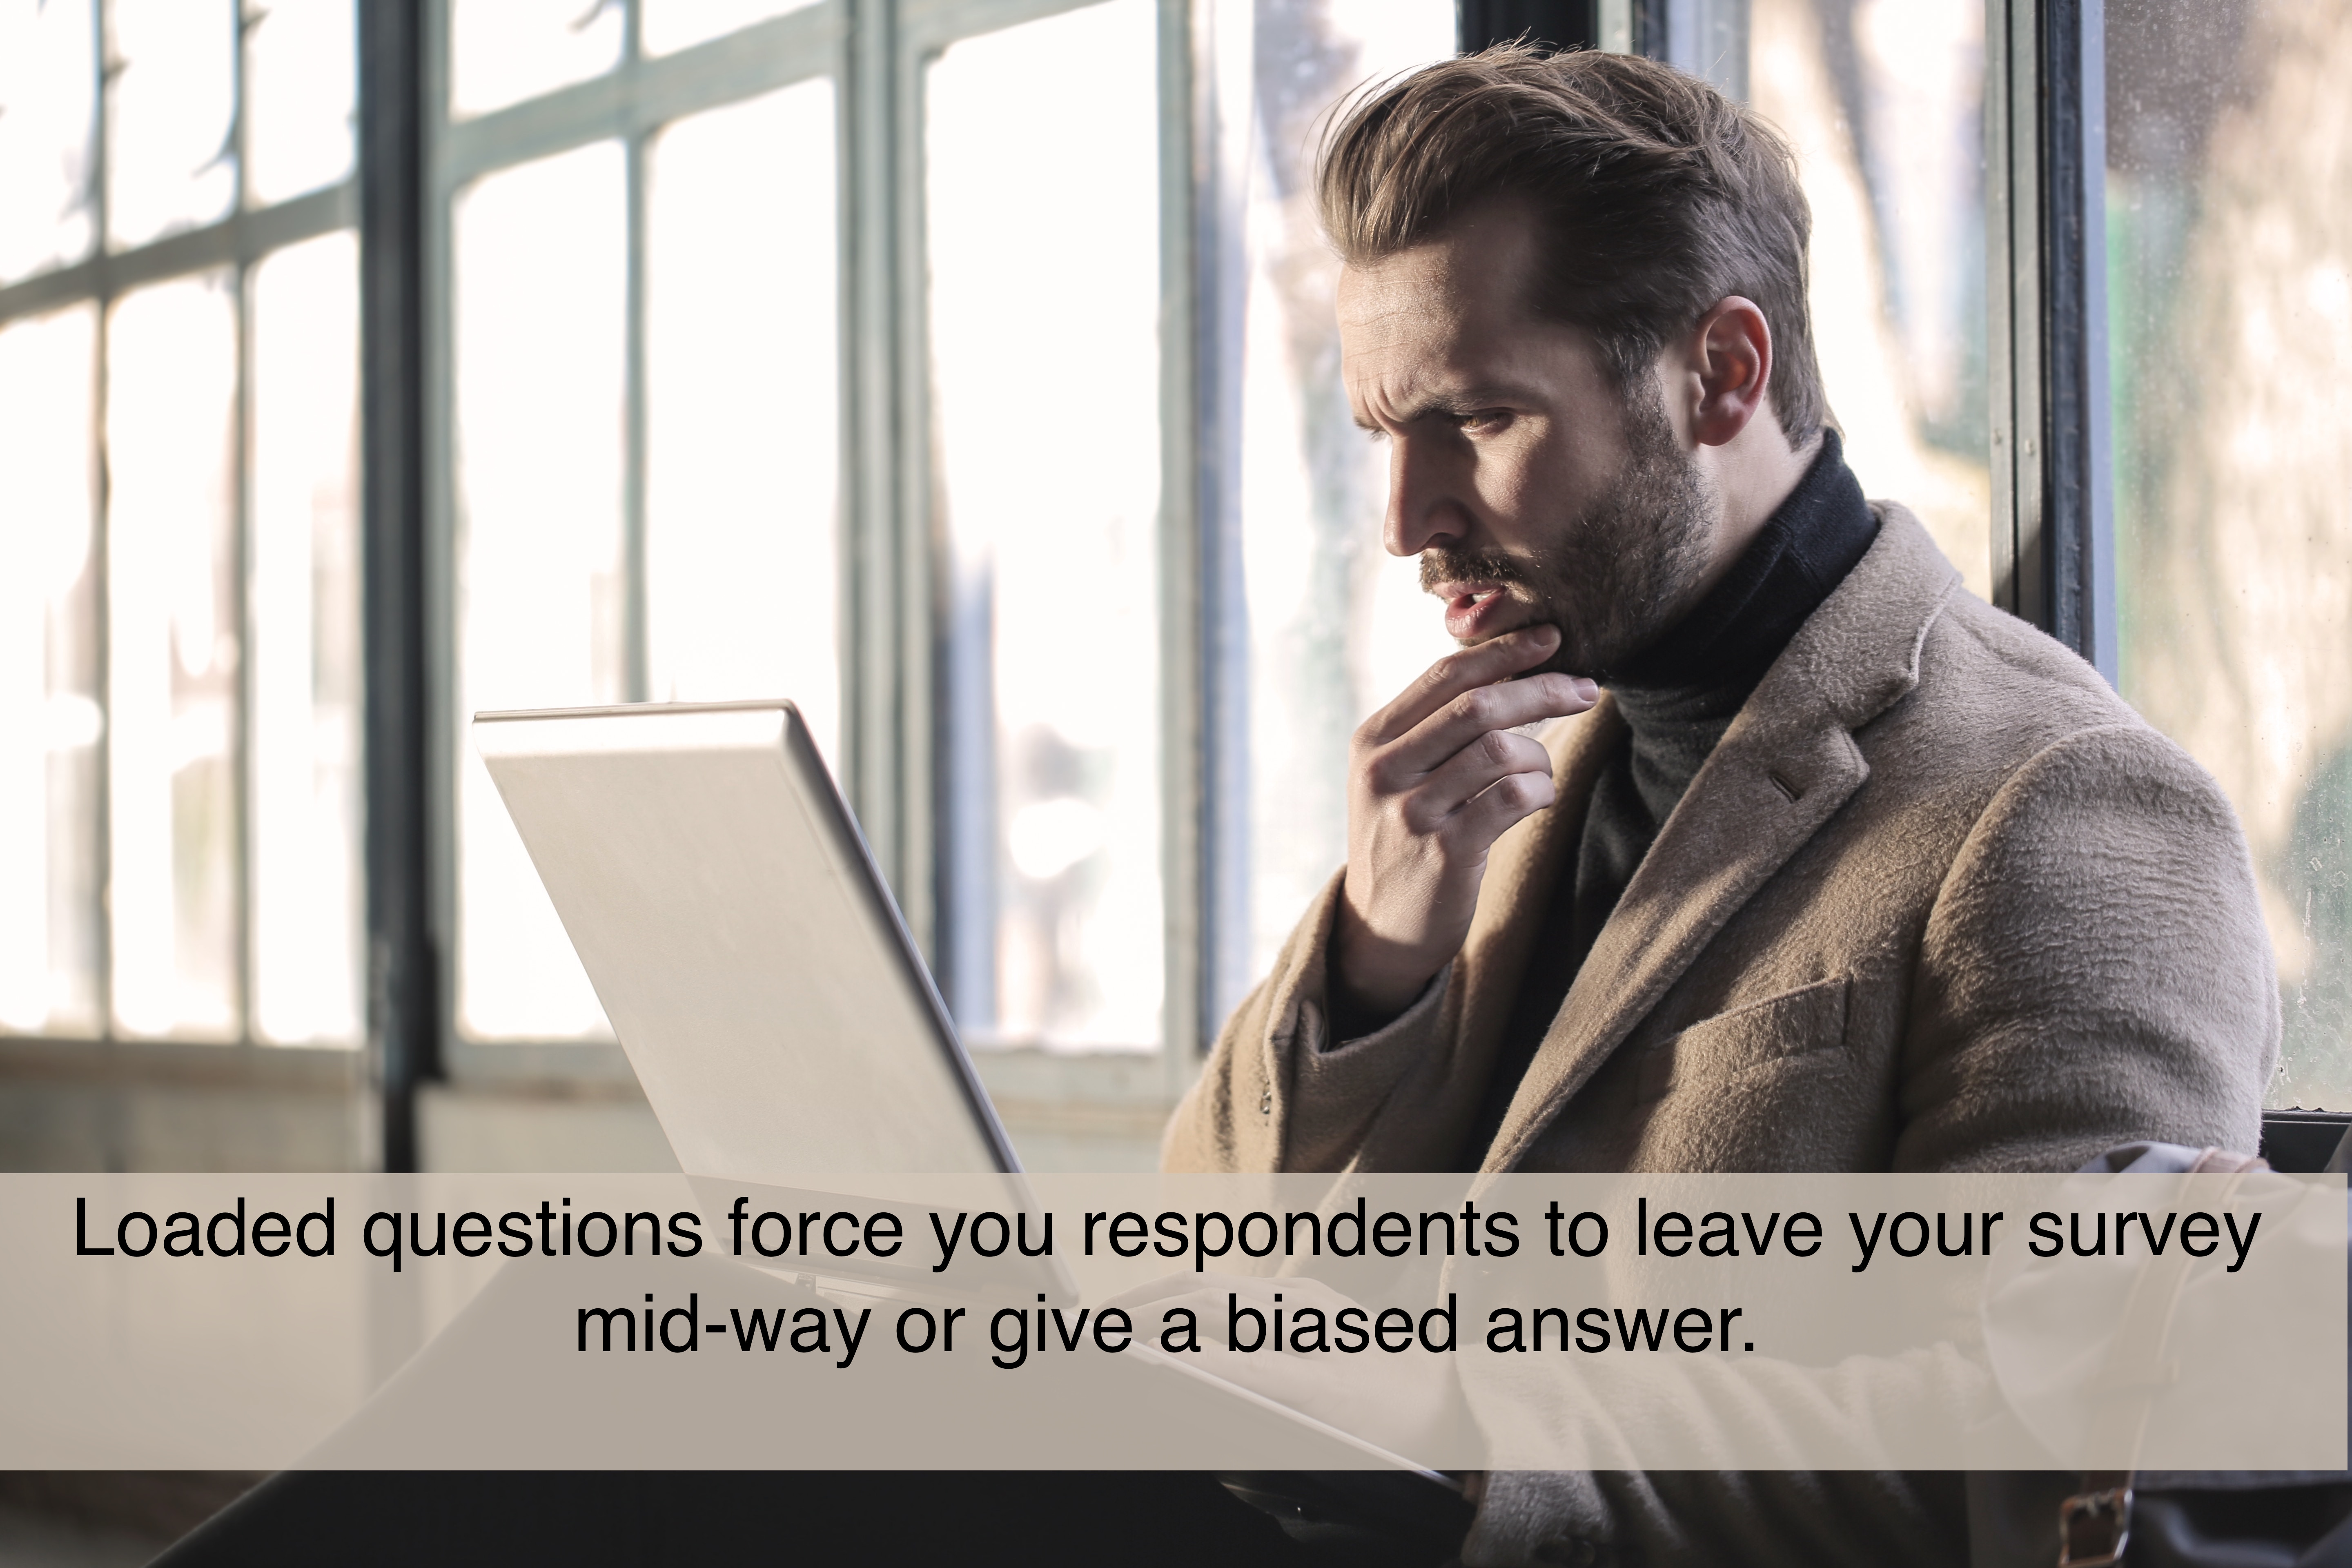 Loaded questions force you respondents to leave your survey mid-way or give a biased answer.